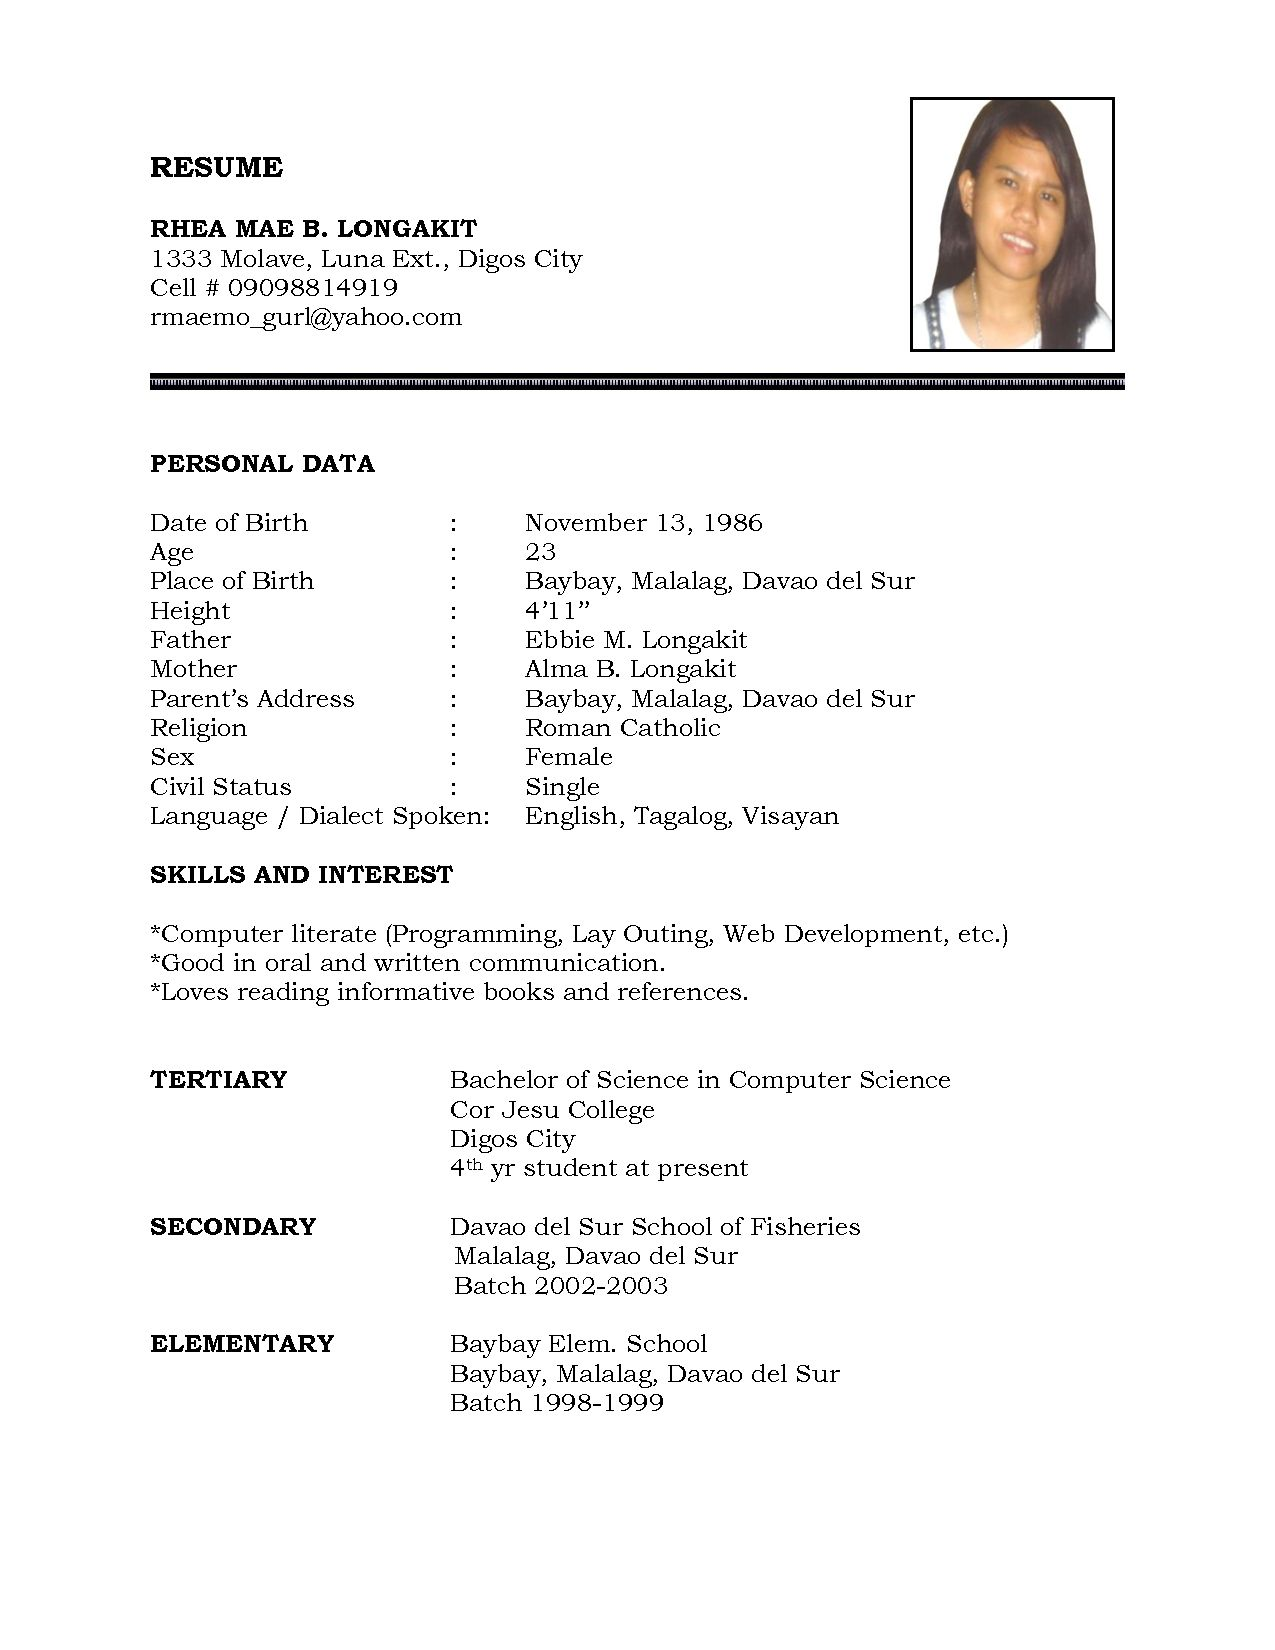 Format resume solarfm sample of job resume format sample resumes thecheapjerseys Image collections